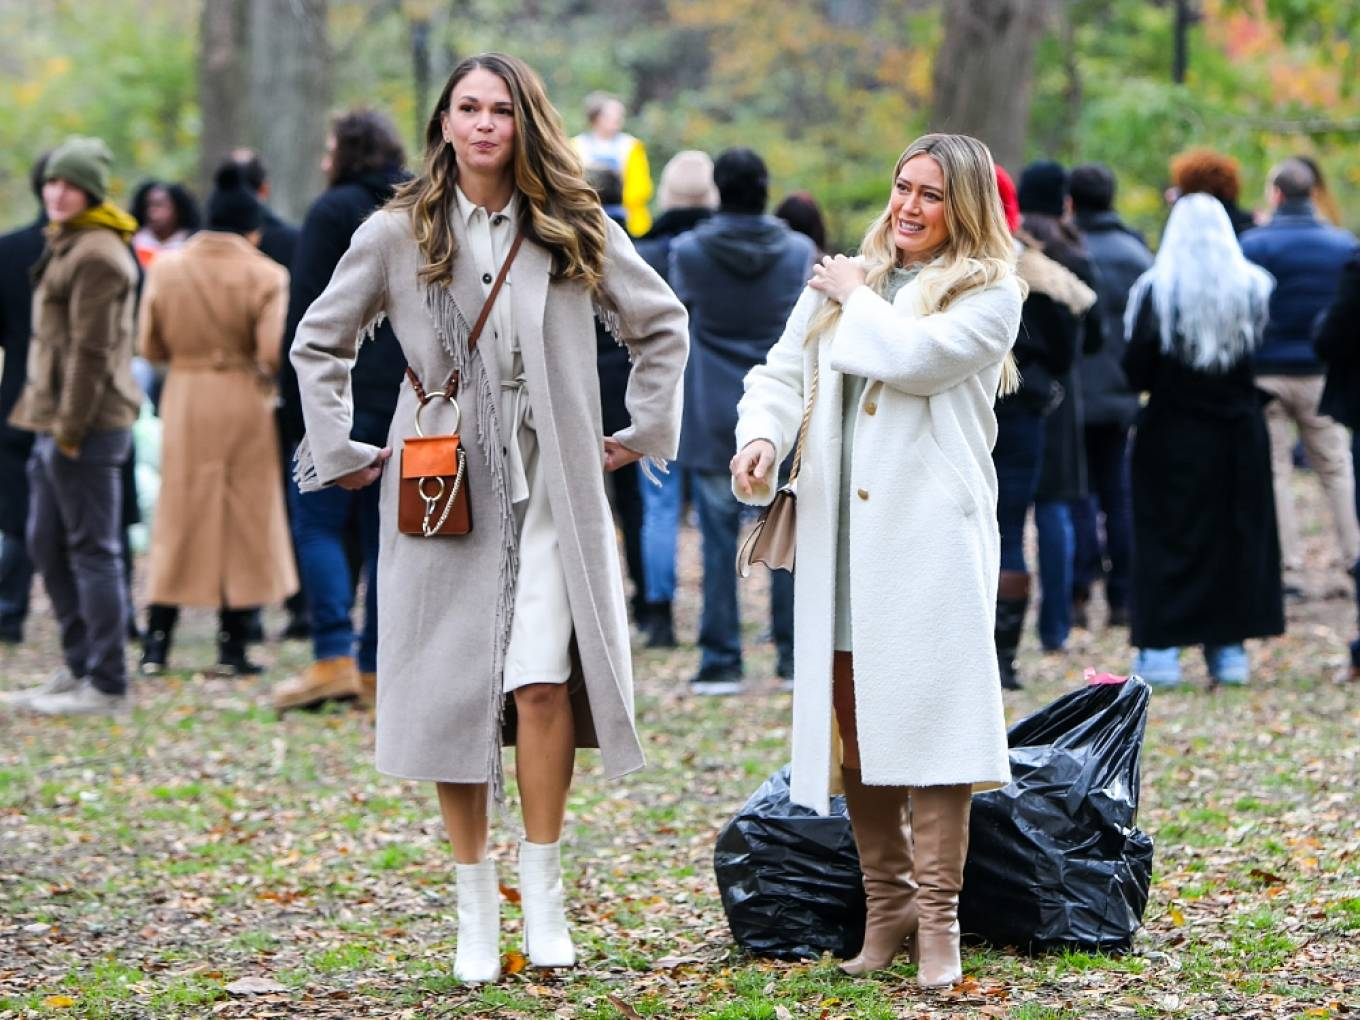 Hilary Duff 2020 : Hilary Duff – With Sutton Foster At the film set of the Younger TV Series in New York-03